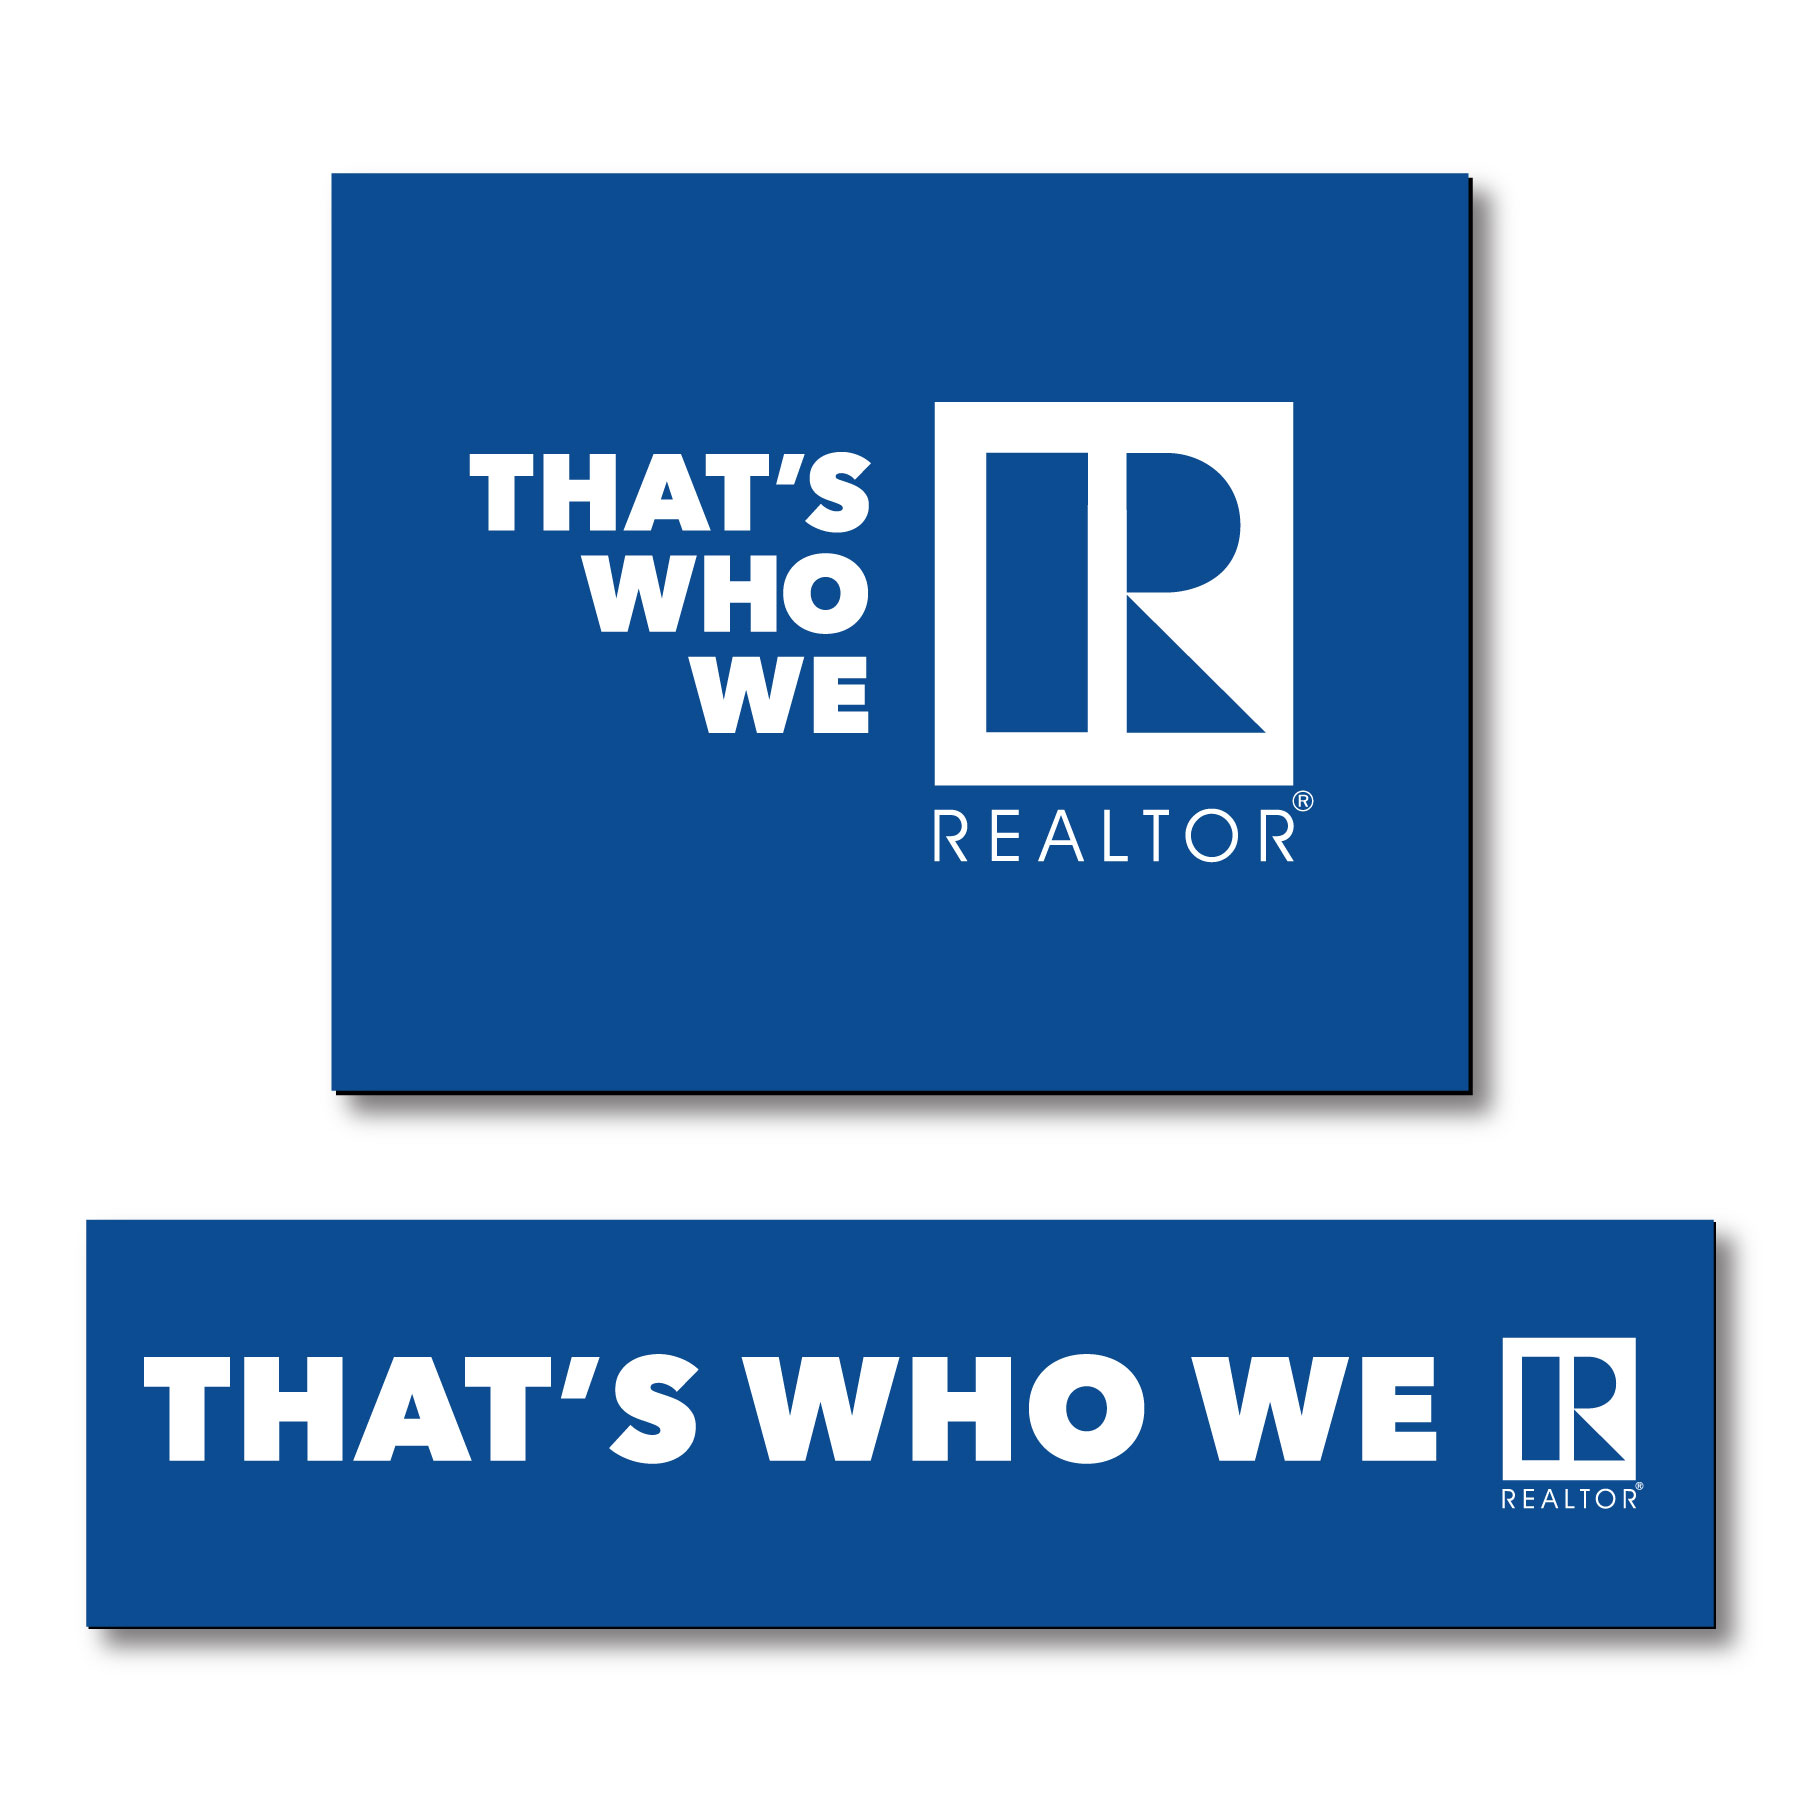 """That's Who We R"" Car Magnets twwr,ThatsWhoWeR,That's,TWWR,ThatWho,That'sWho,Twwr,Thats,Whos,We,Ares,Magnets,Magents,Mags,Stickies,Sticky,cars,automobiles,autos,doors"